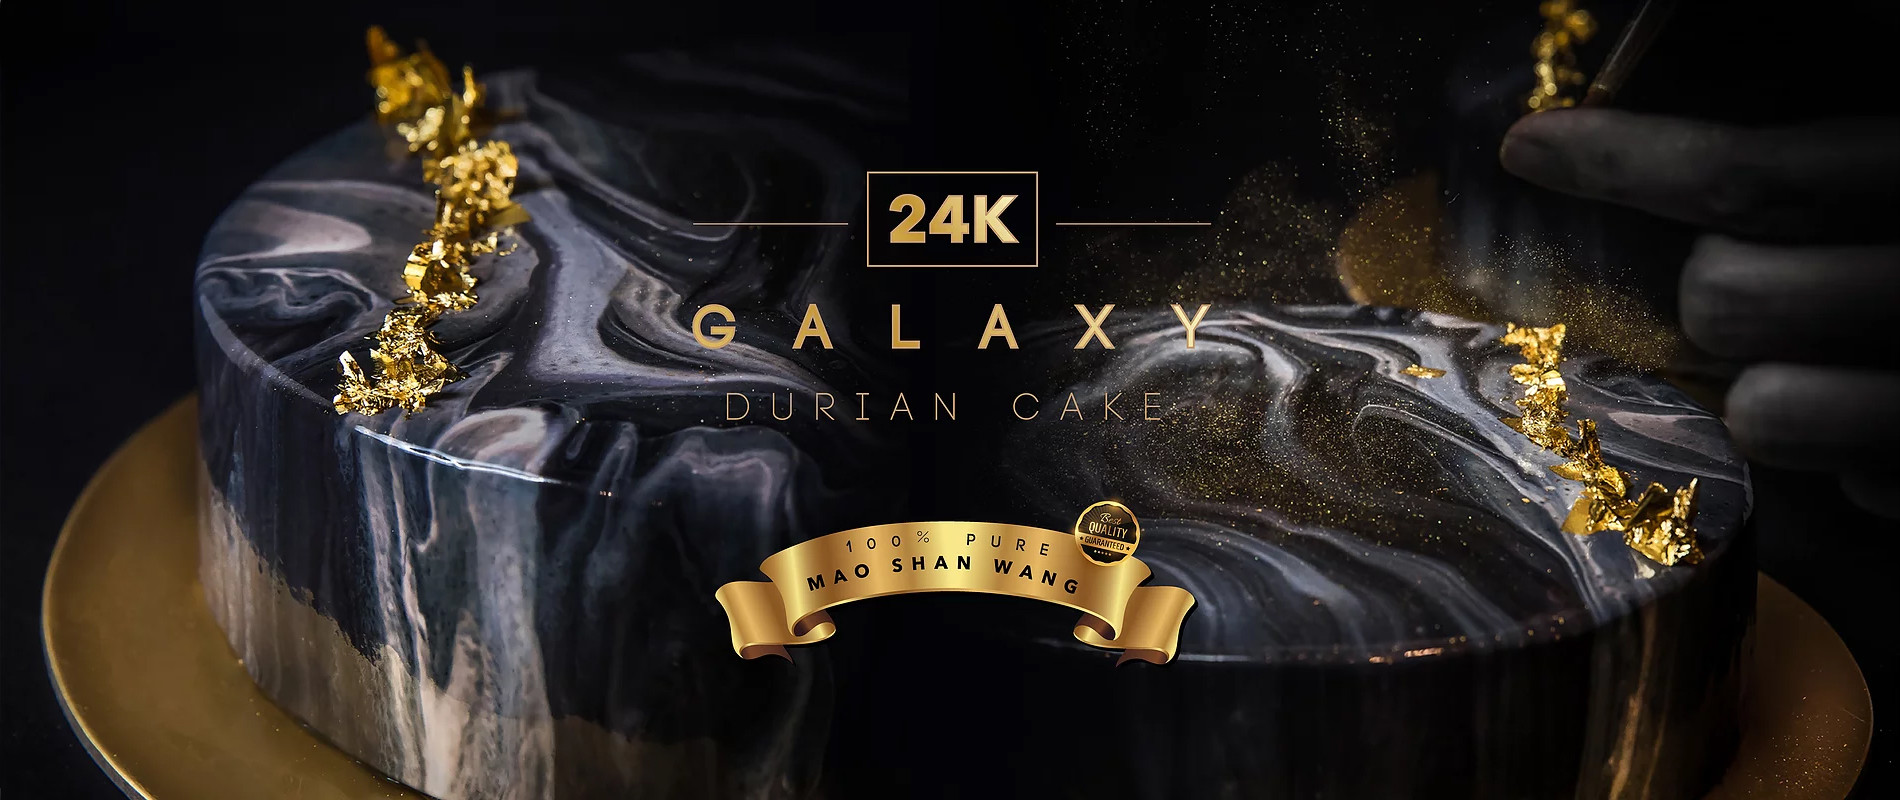 24K Galaxy Mao Shan Wang Durian Cake